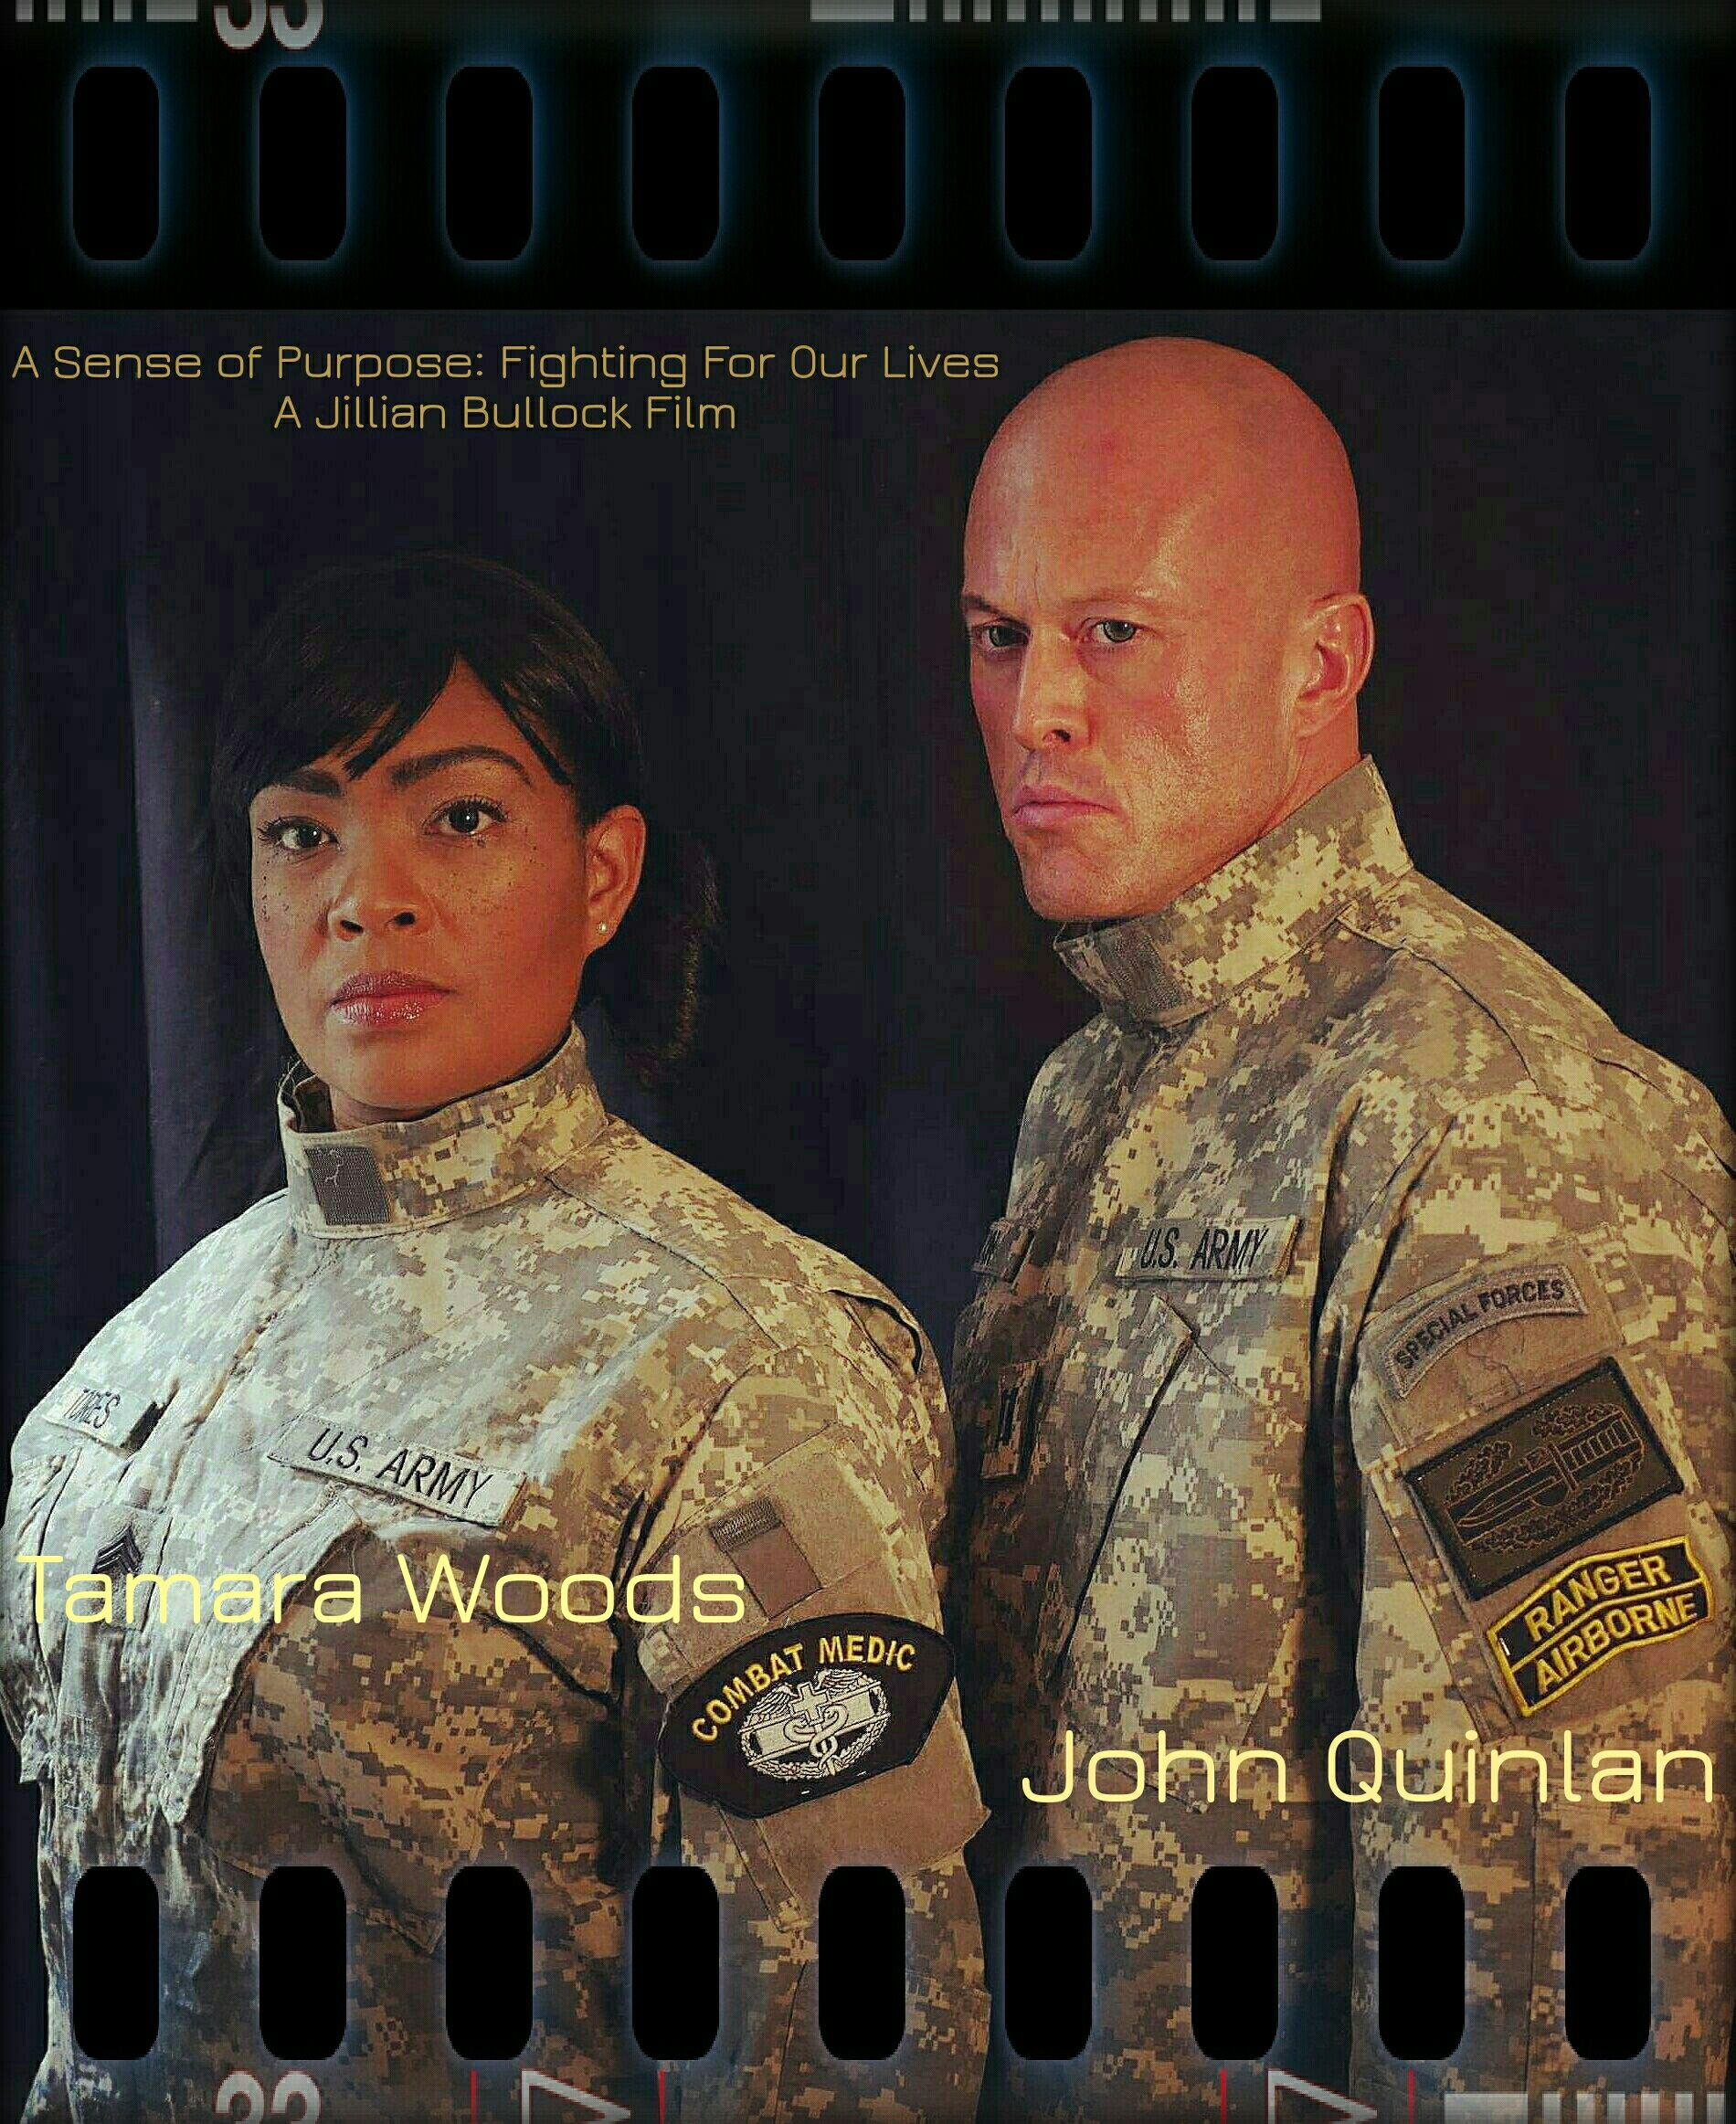 A Sense of Purpose Fighting For Our Lives - Tamara Woods & John Quinlan by Jillian Bullock #JohnQuinlan #TamaraWoods #JillianBullock #ASenseOfPurpose #Movie